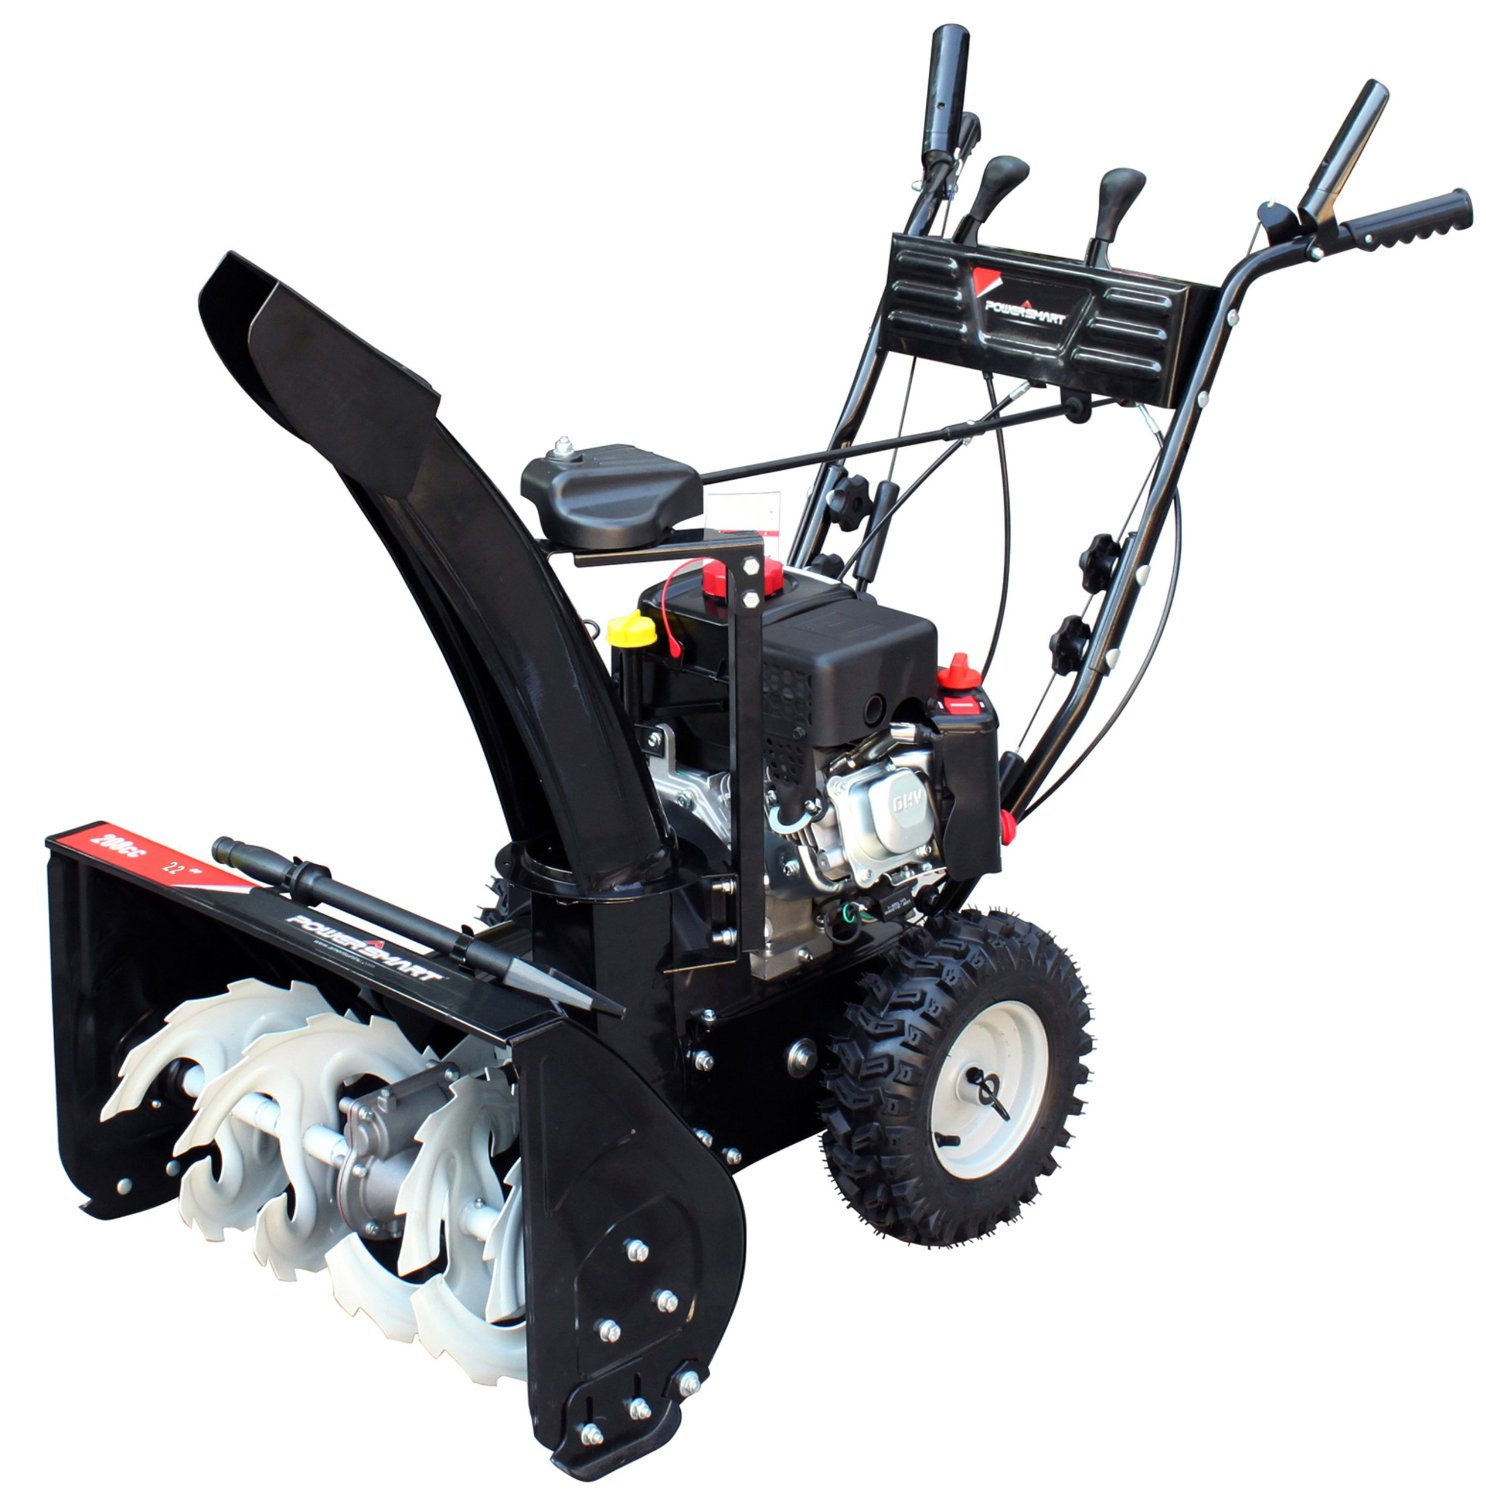 2014 Power Smart Snow Devil Blowers At Menards Lowes Sears 3 Way Switch Db7659a